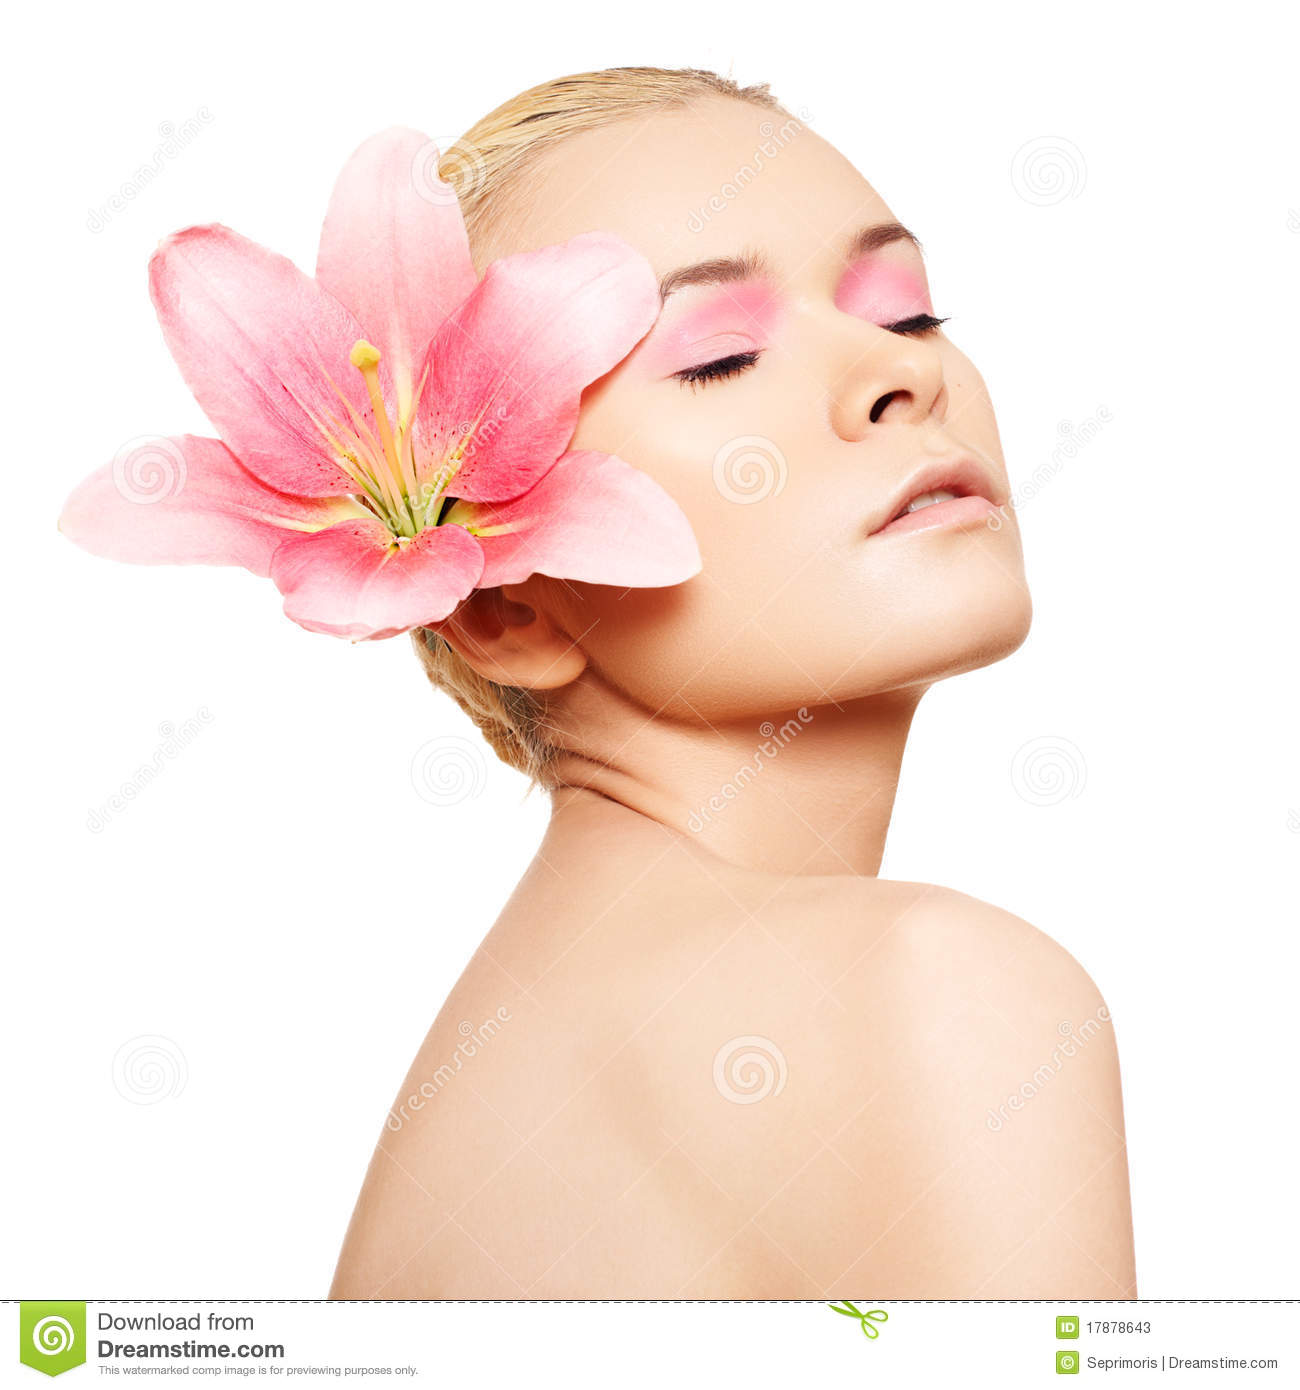 Spa Skin Care: Spa, Wellness, Skin Care. Beauty With Pink Make-up Stock